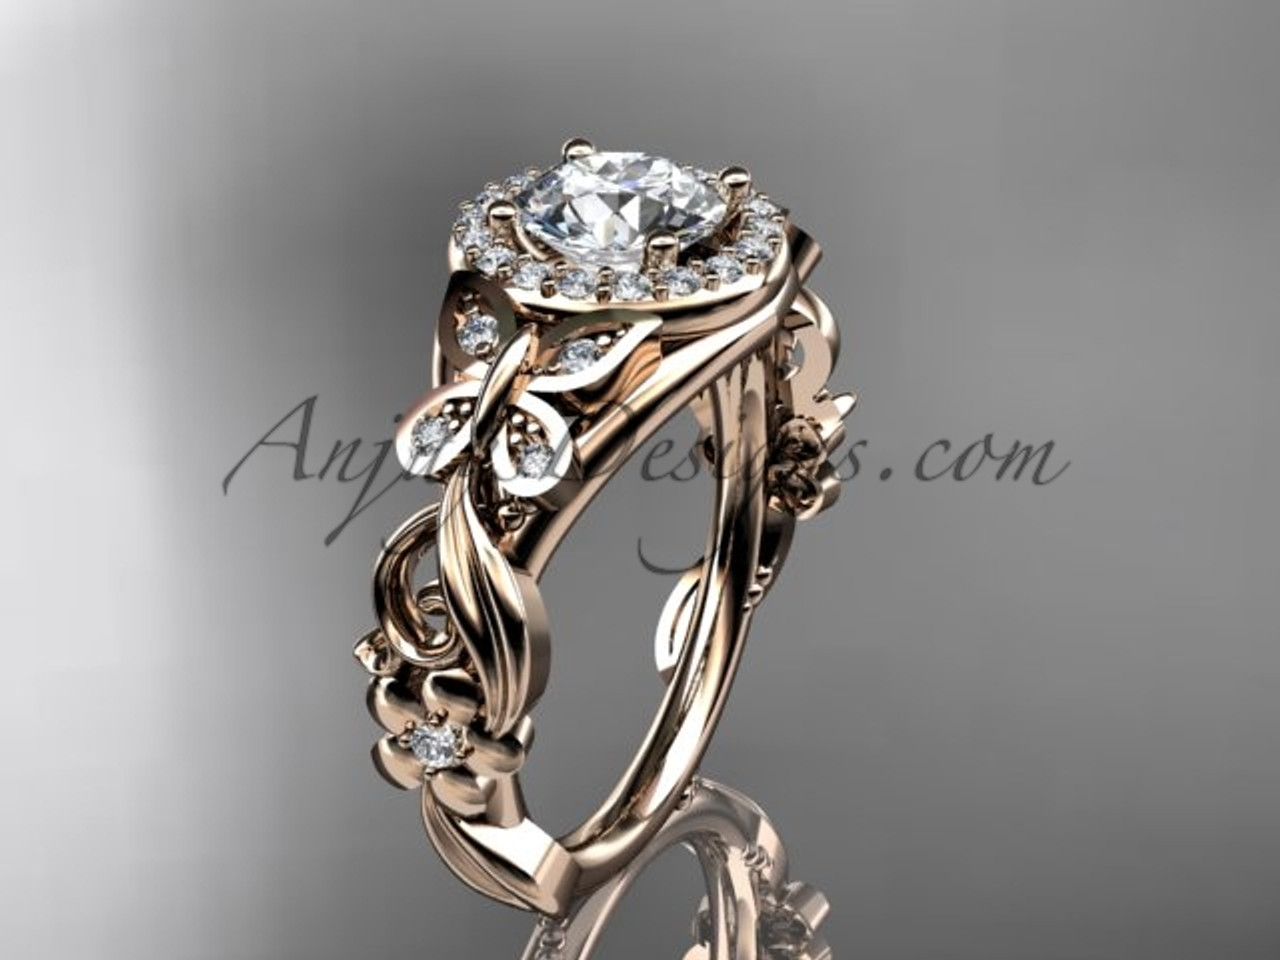 ring shipping cut gold with diamond calla ic diamonds engagement wedding pagespeed easy returns rings lily butterfly white free gallery